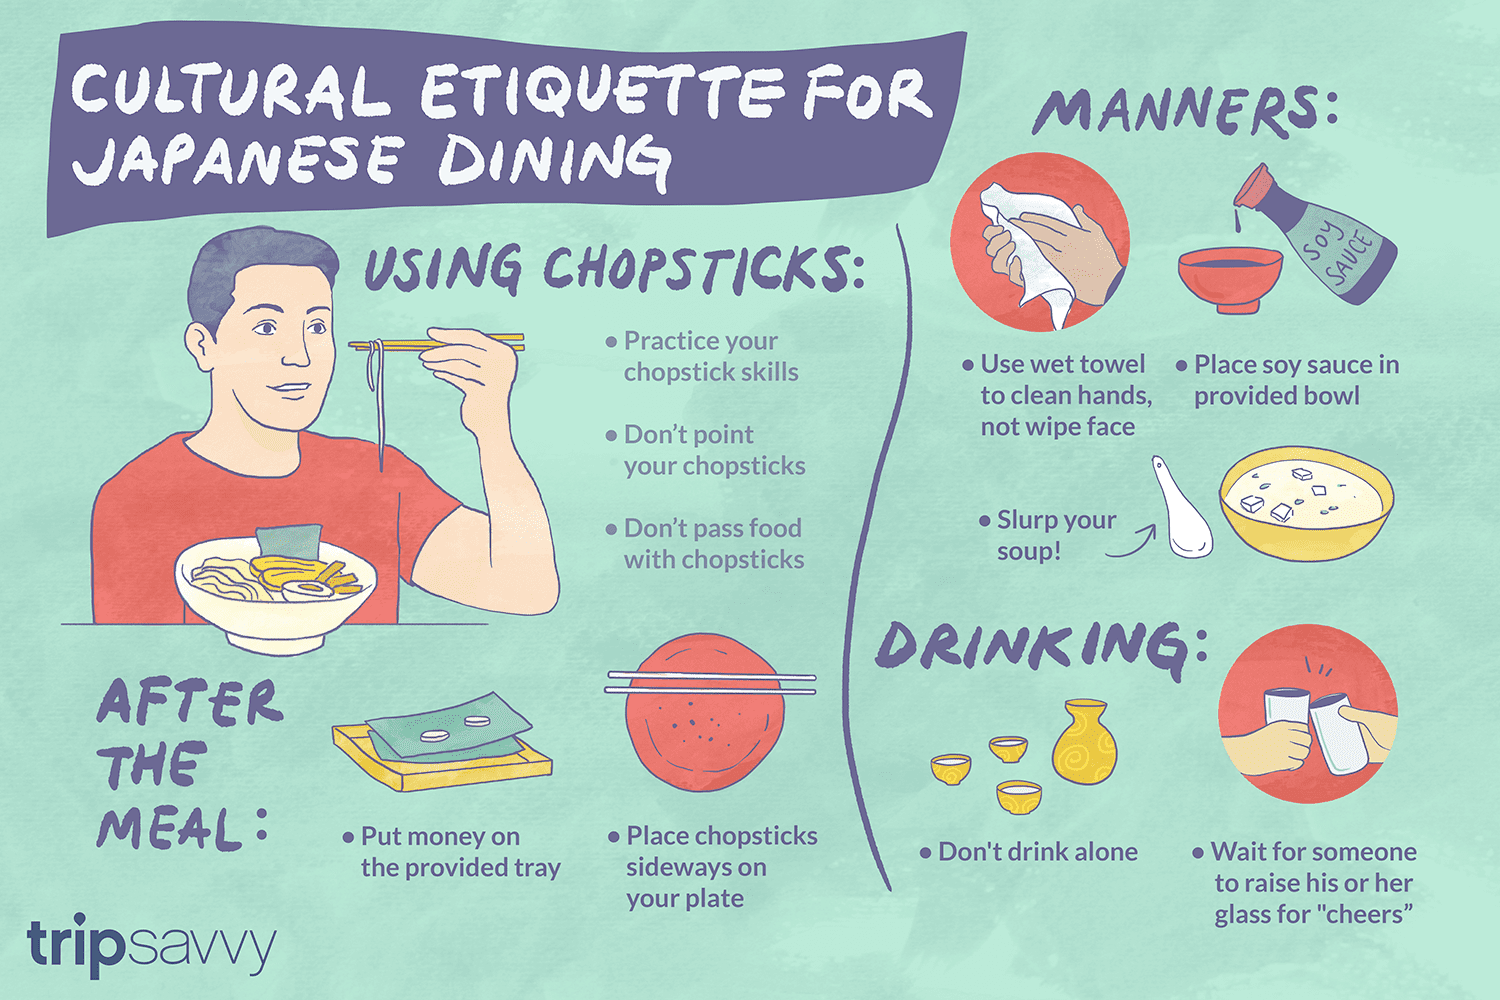 Cultural Etiquette For Japanese Dining